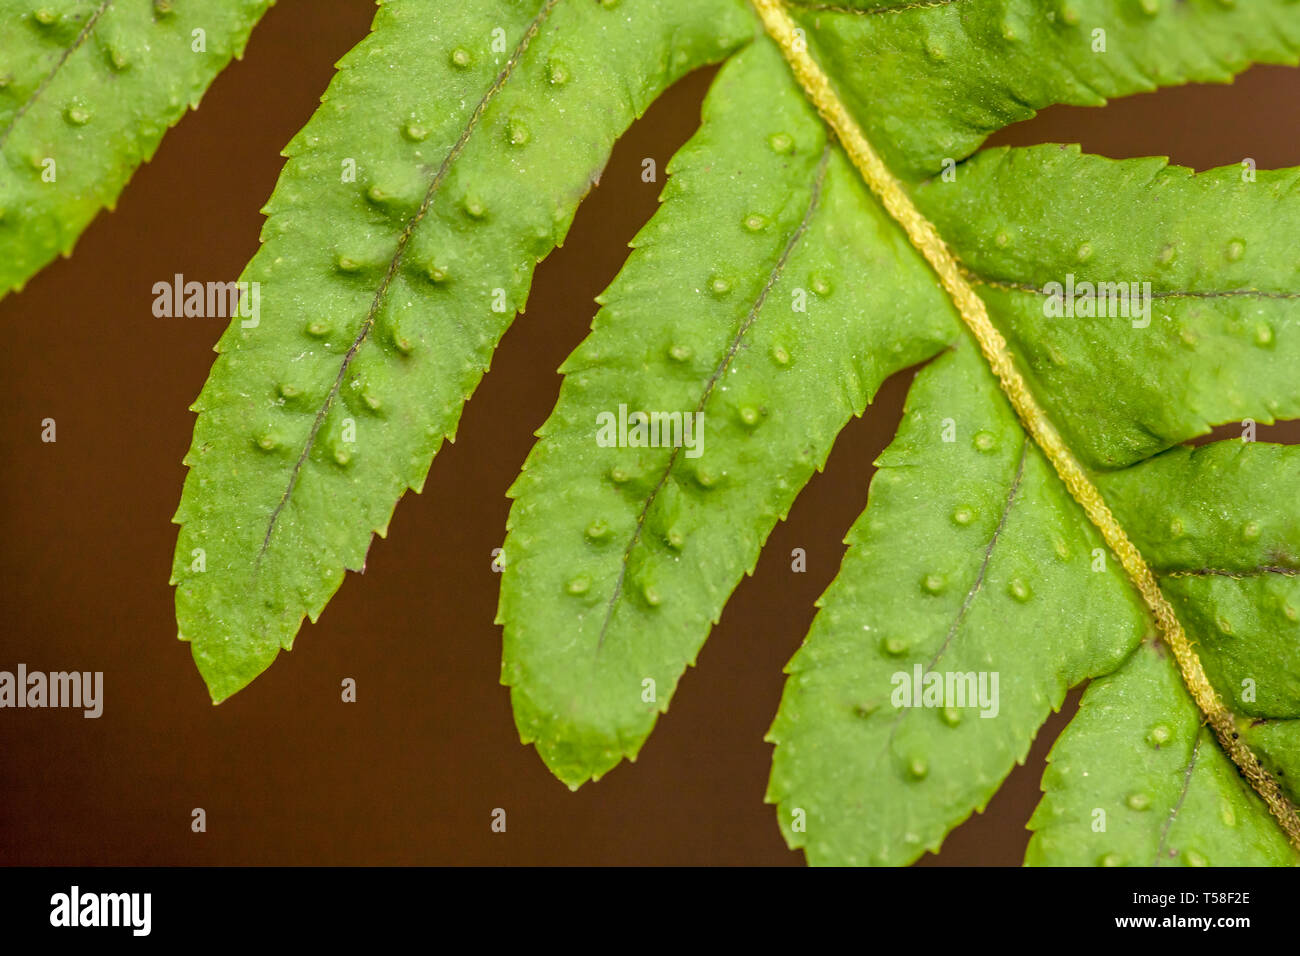 Issaquah, Washington, USA.  Licorice Fern (Polypodium glycyrrhiza) close-up of leaflets, also known as Many-footed Fern or Sweet Root. Stock Photo